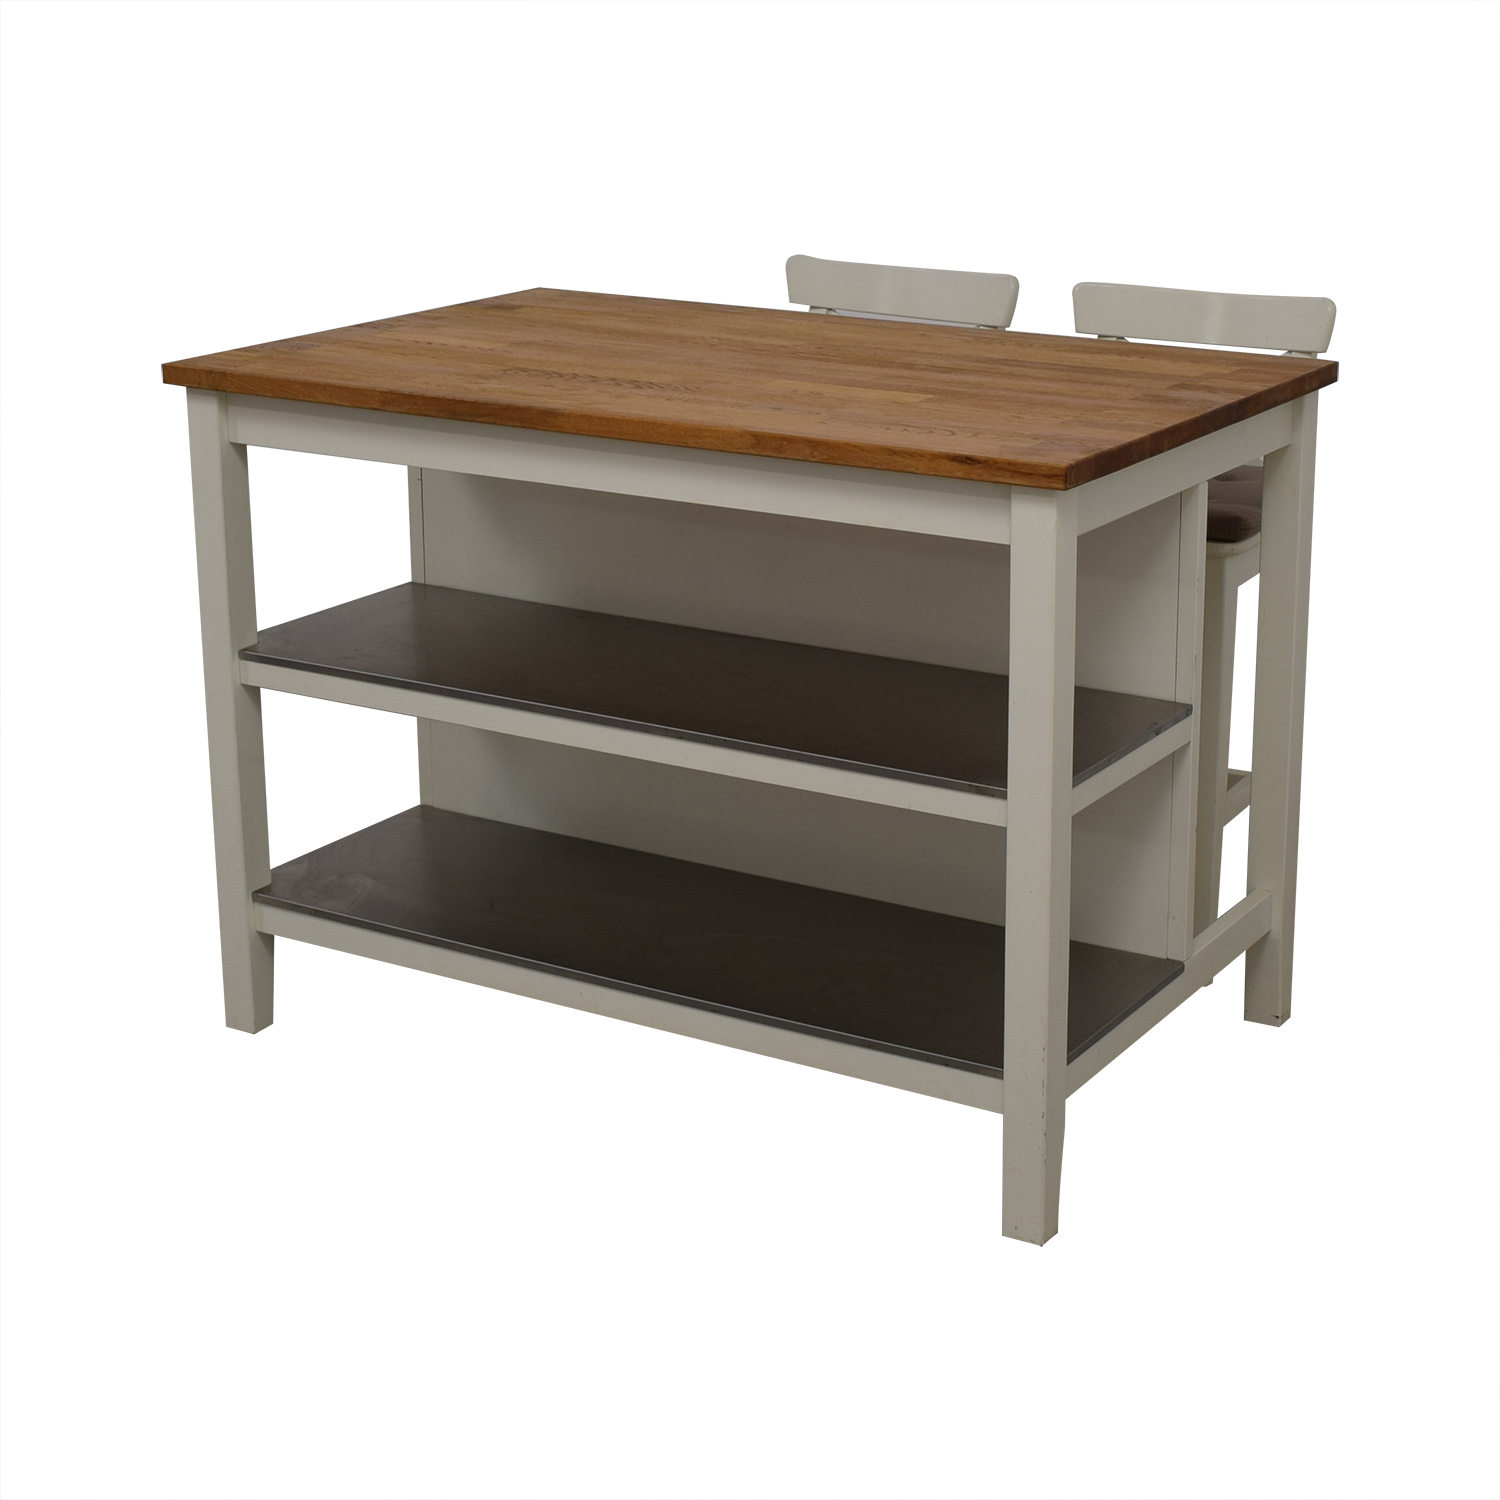 50 Off Ikea Ikea Stenstorp Kitchen Island With Ingolf Chairs Tables